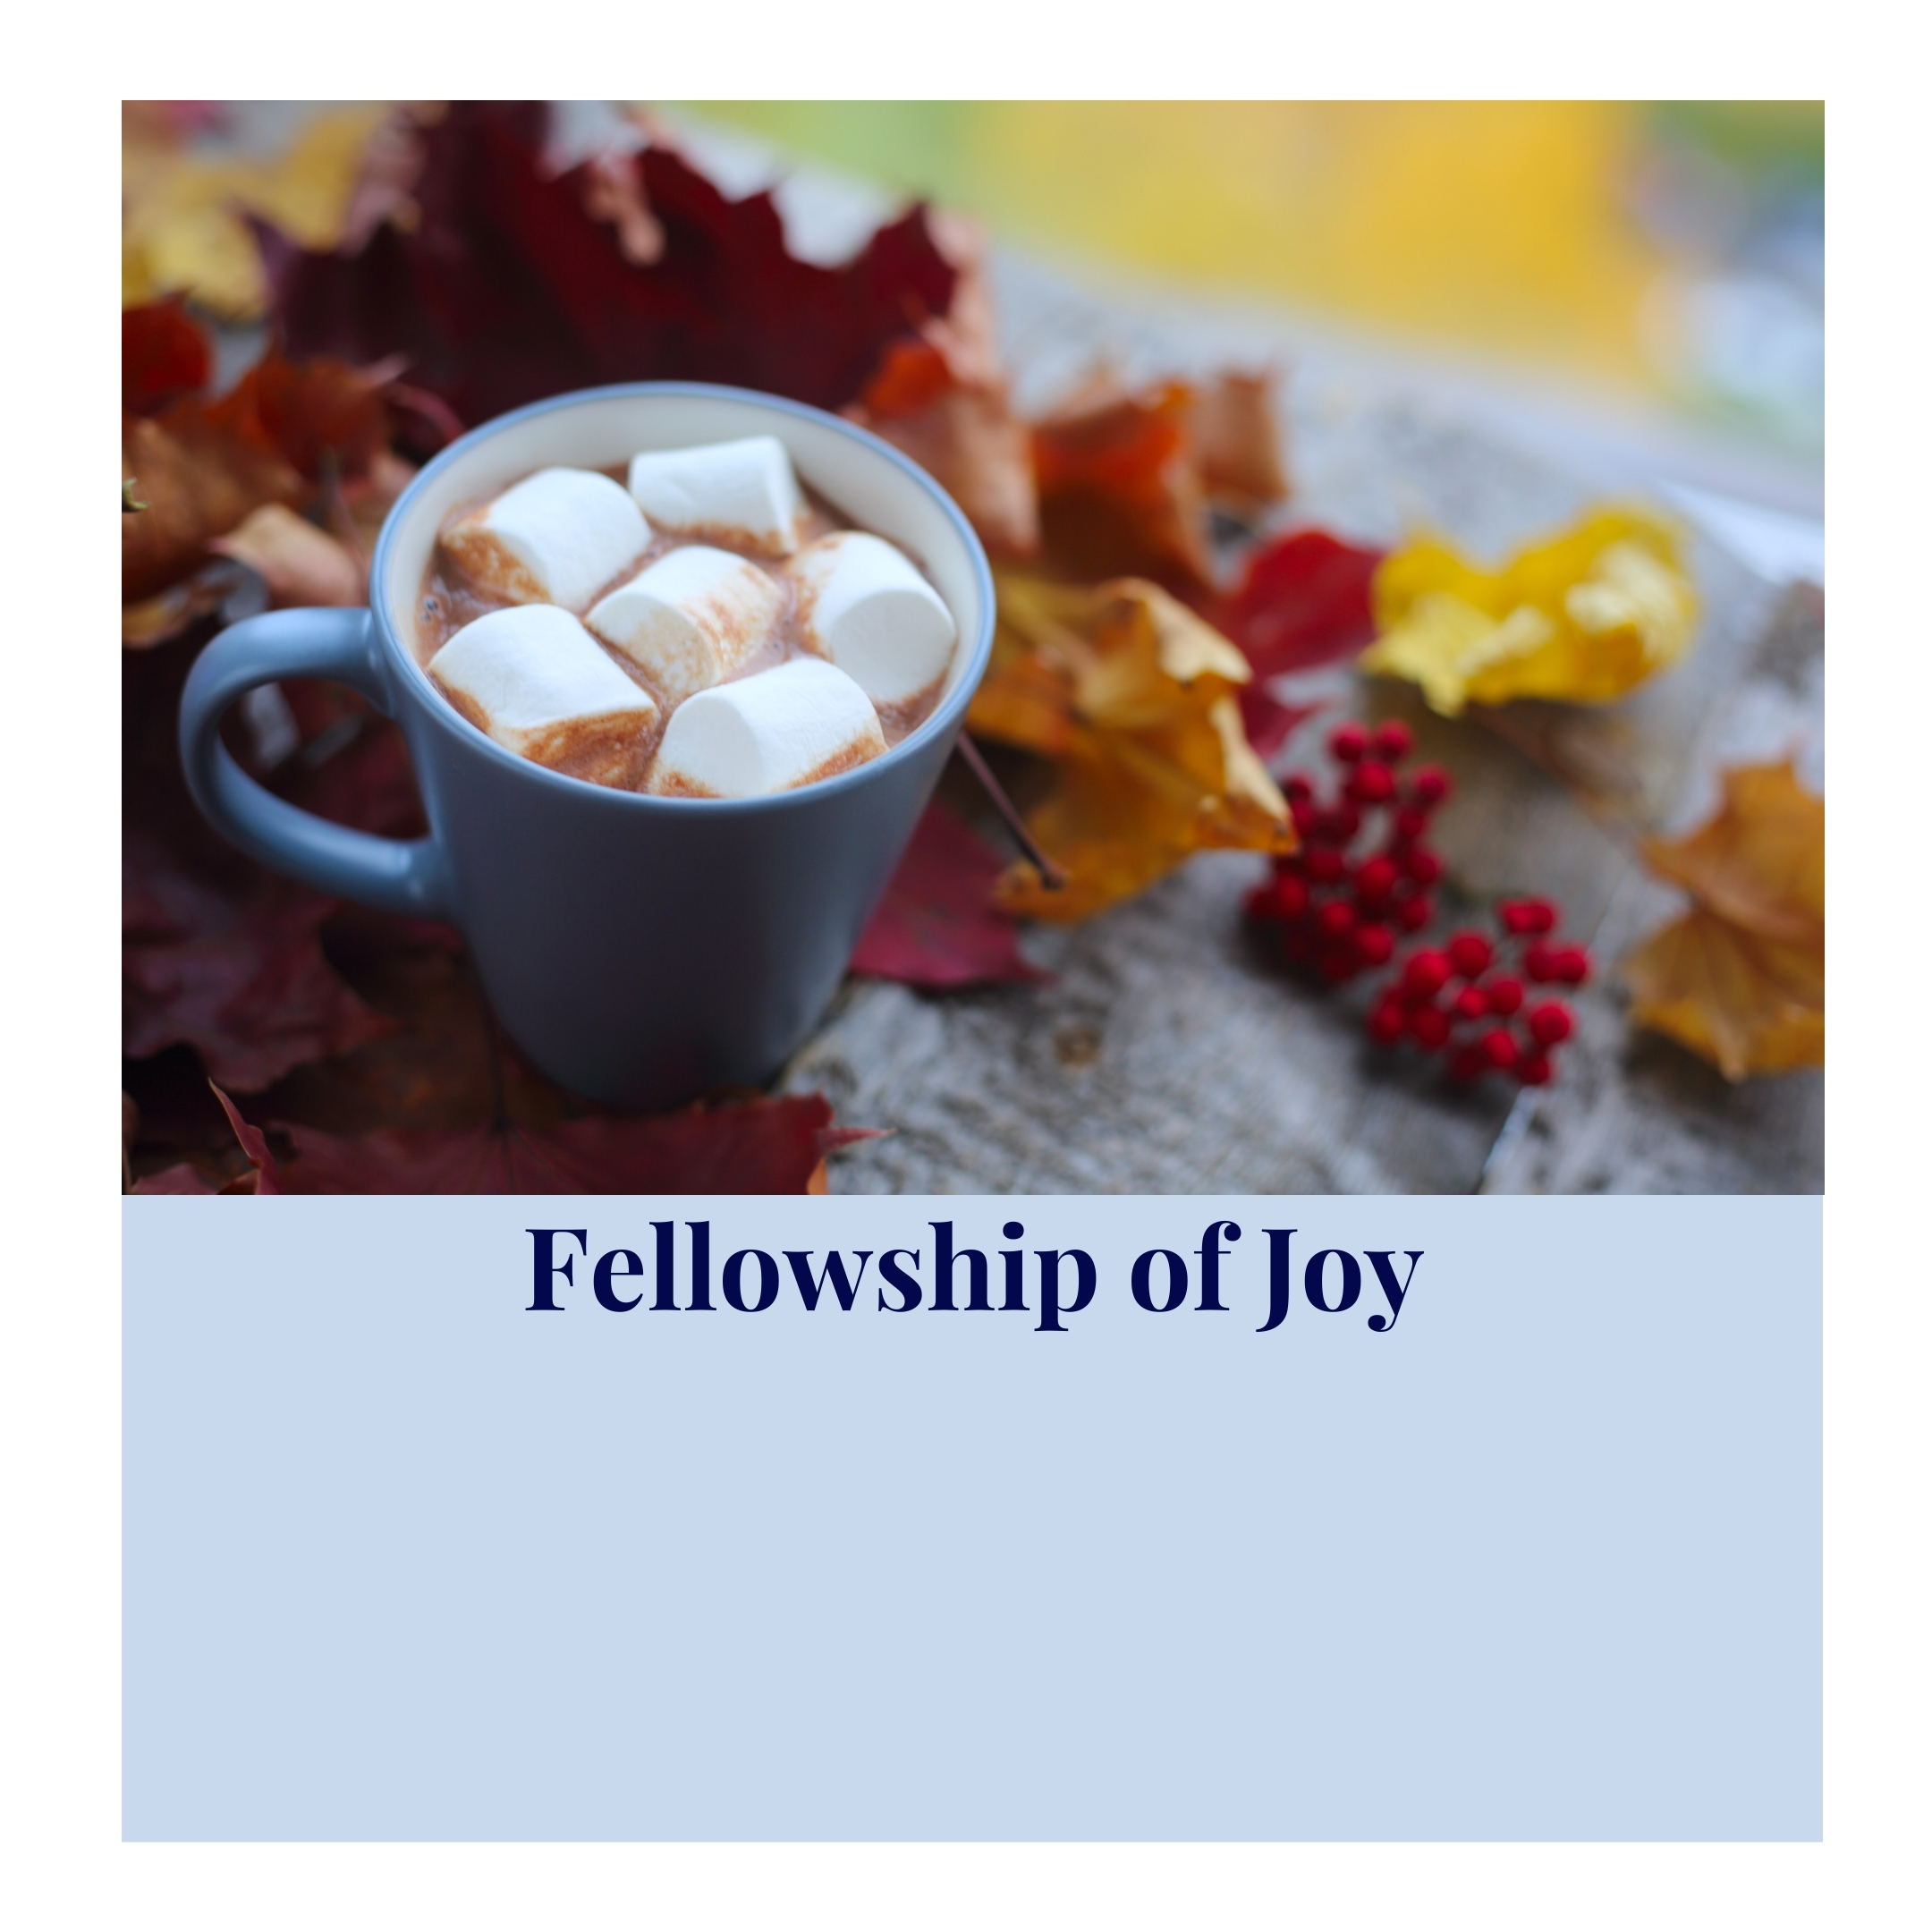 Fellowship of Joy